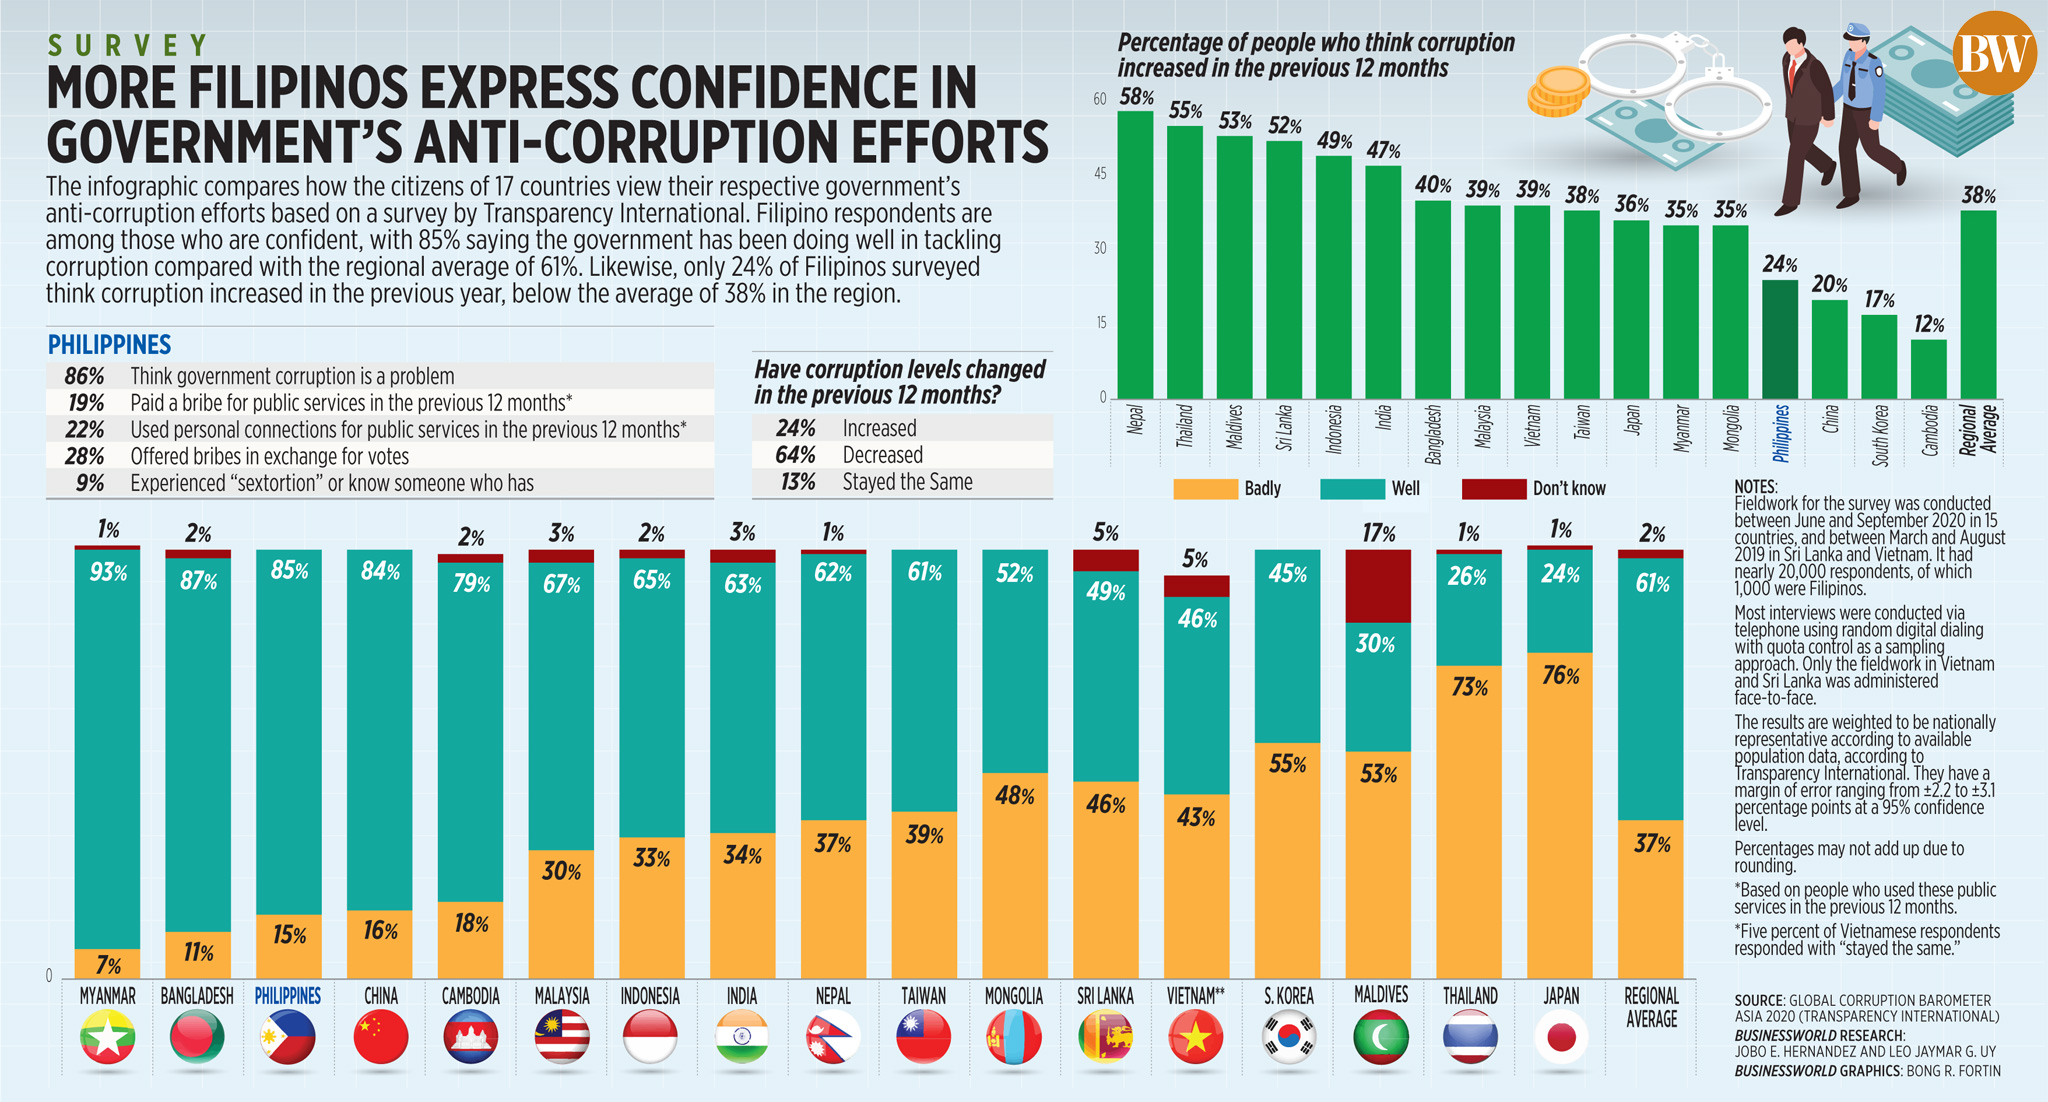 More Filipinos express confidence in government's anti-corruption efforts